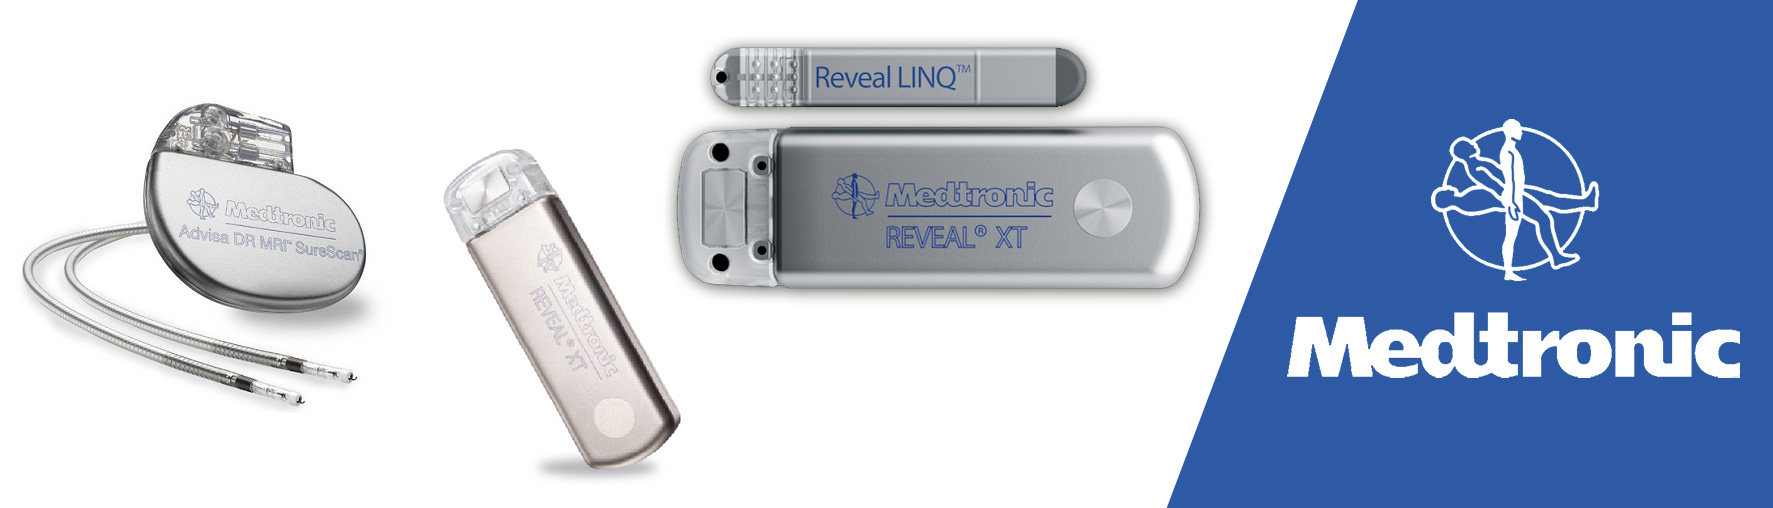 We've Got Rhythm! Medtronic Corporation's Cardiac Pacemaker Business